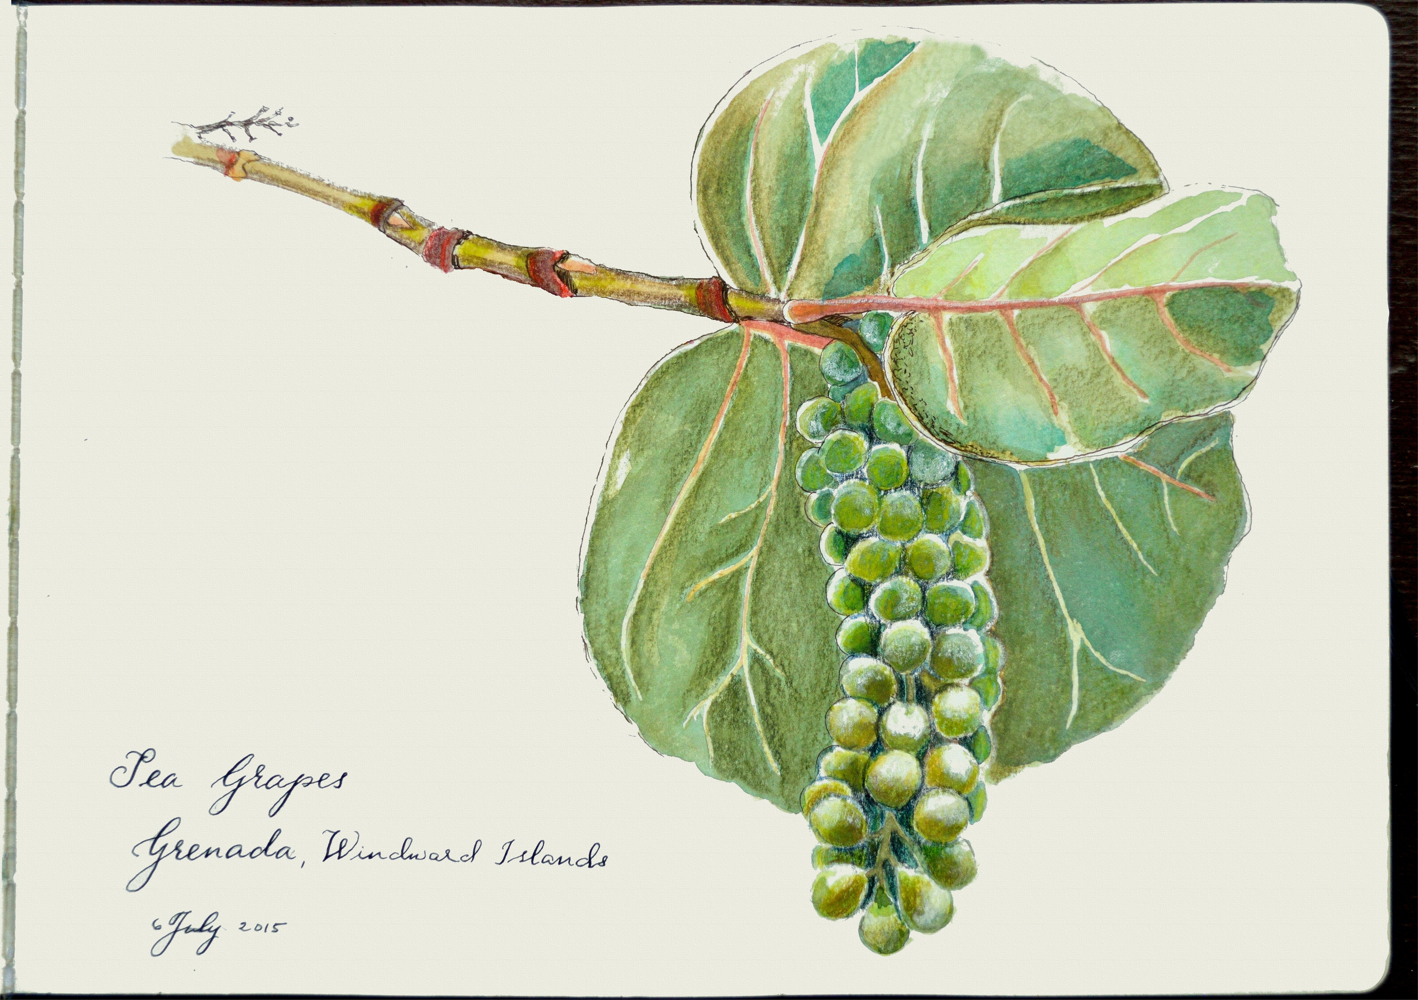 sea grapes in Grenada, West Indies